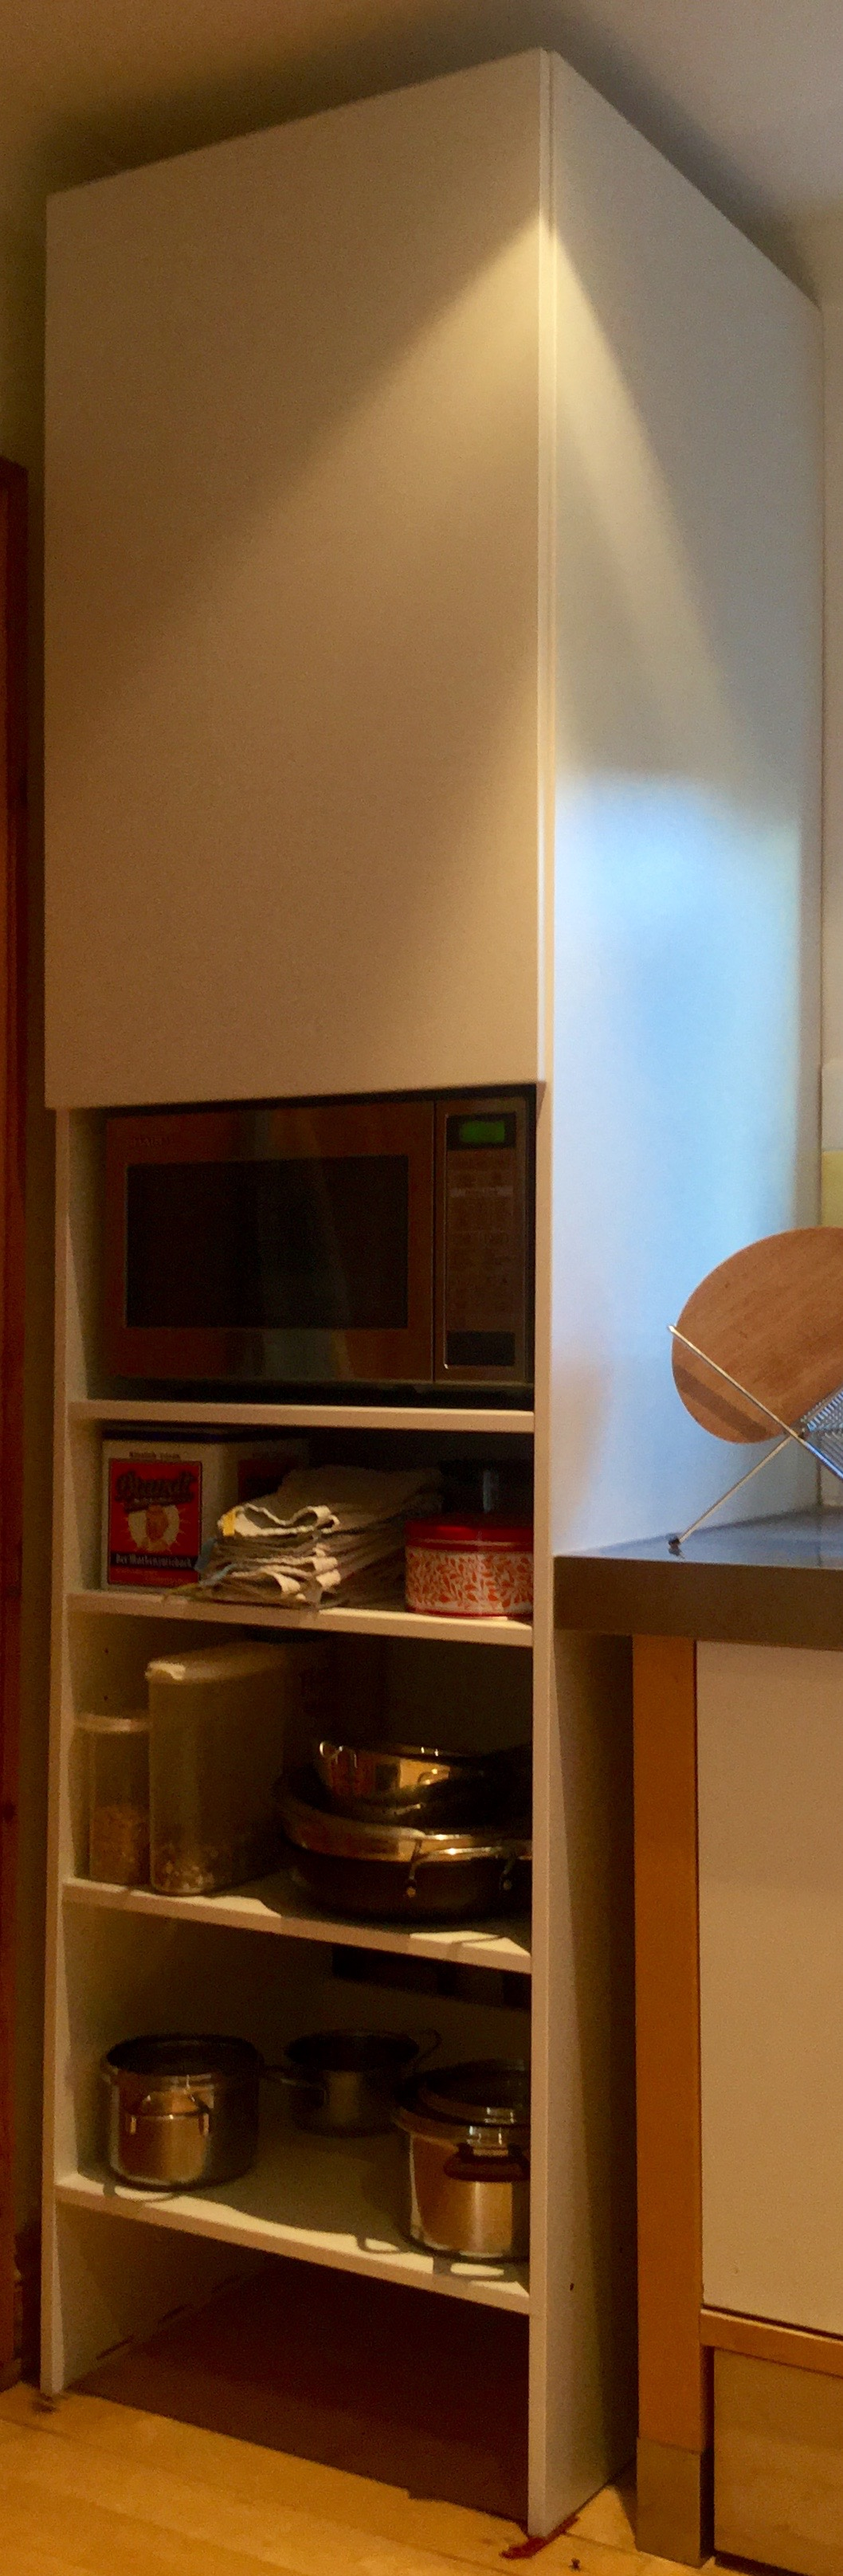 cabinet pictures assemble solutions shelves for to me corner near wooden cabinets pull prefab with home tall storage ideas fancy cream and interior tips ready out designs cupboard jpg kitchen